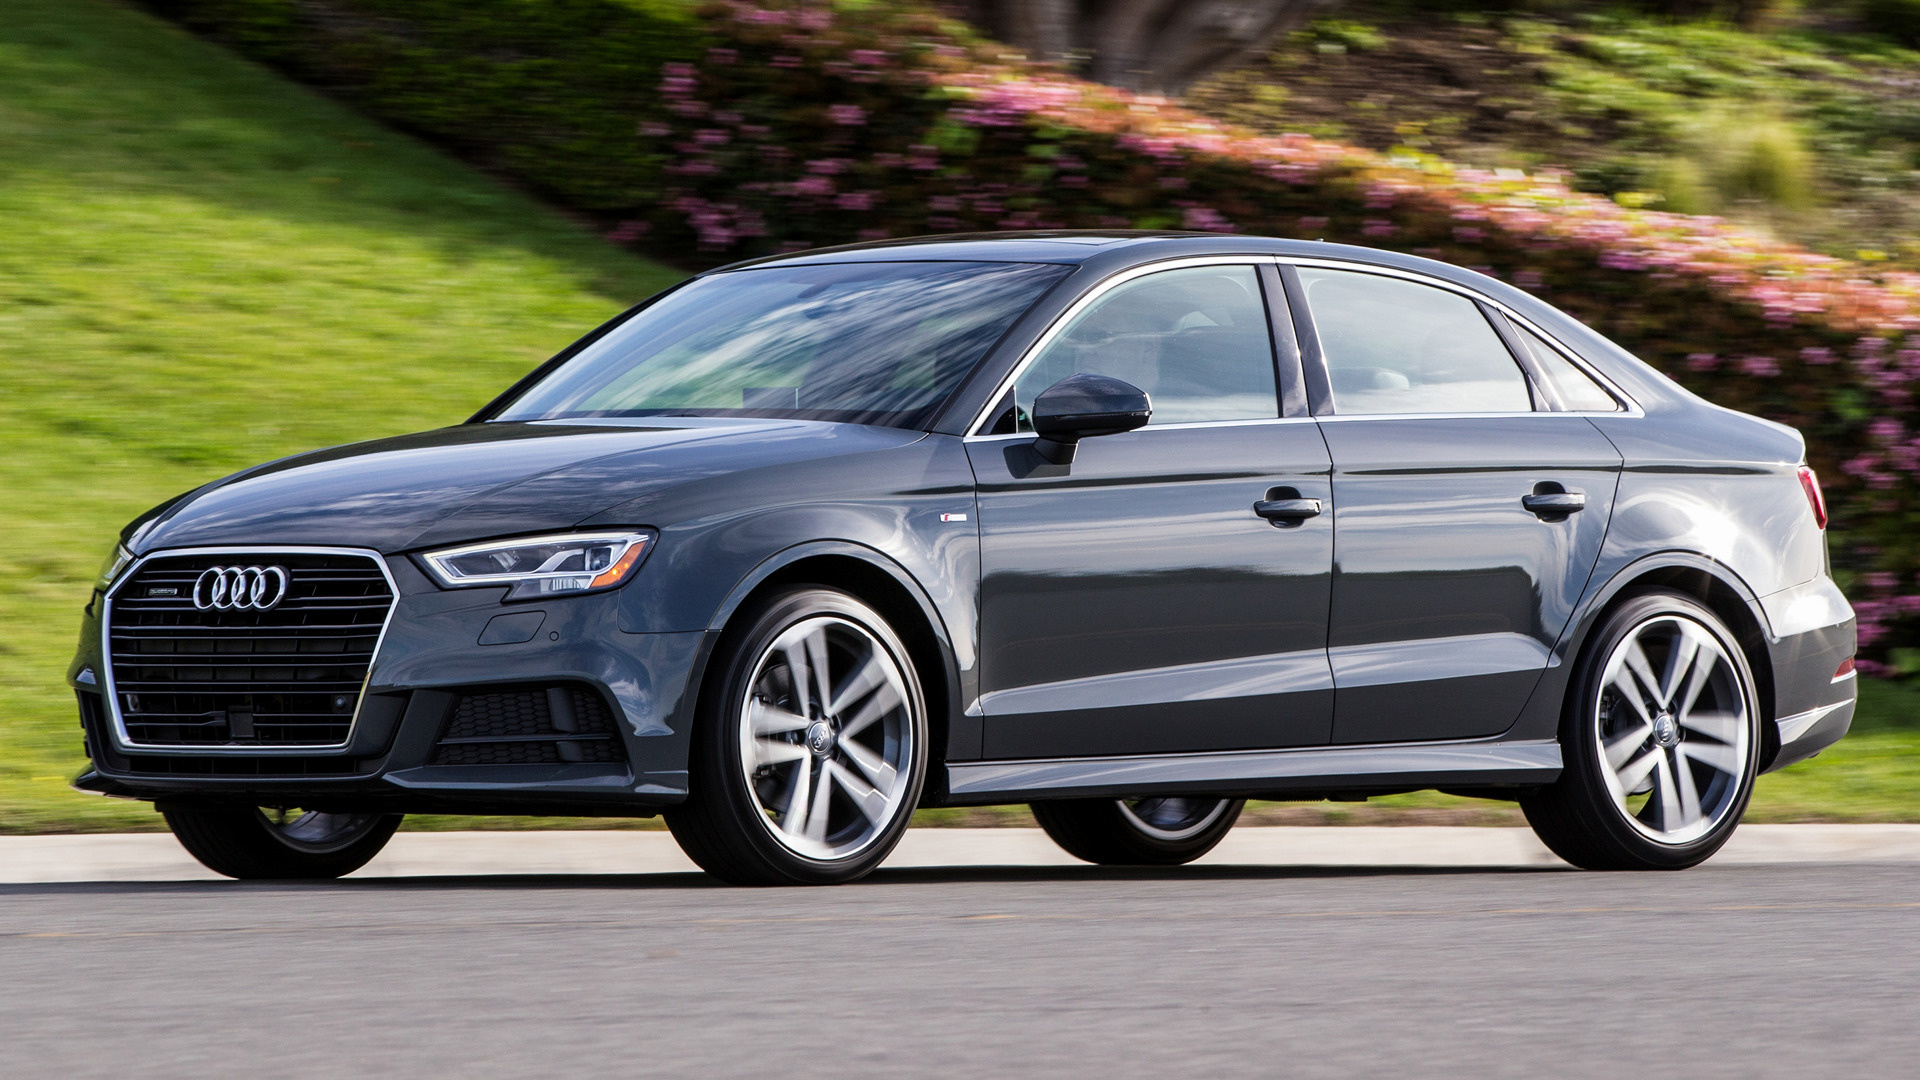 audi a3 sedan s line 2017 us wallpapers and hd images. Black Bedroom Furniture Sets. Home Design Ideas